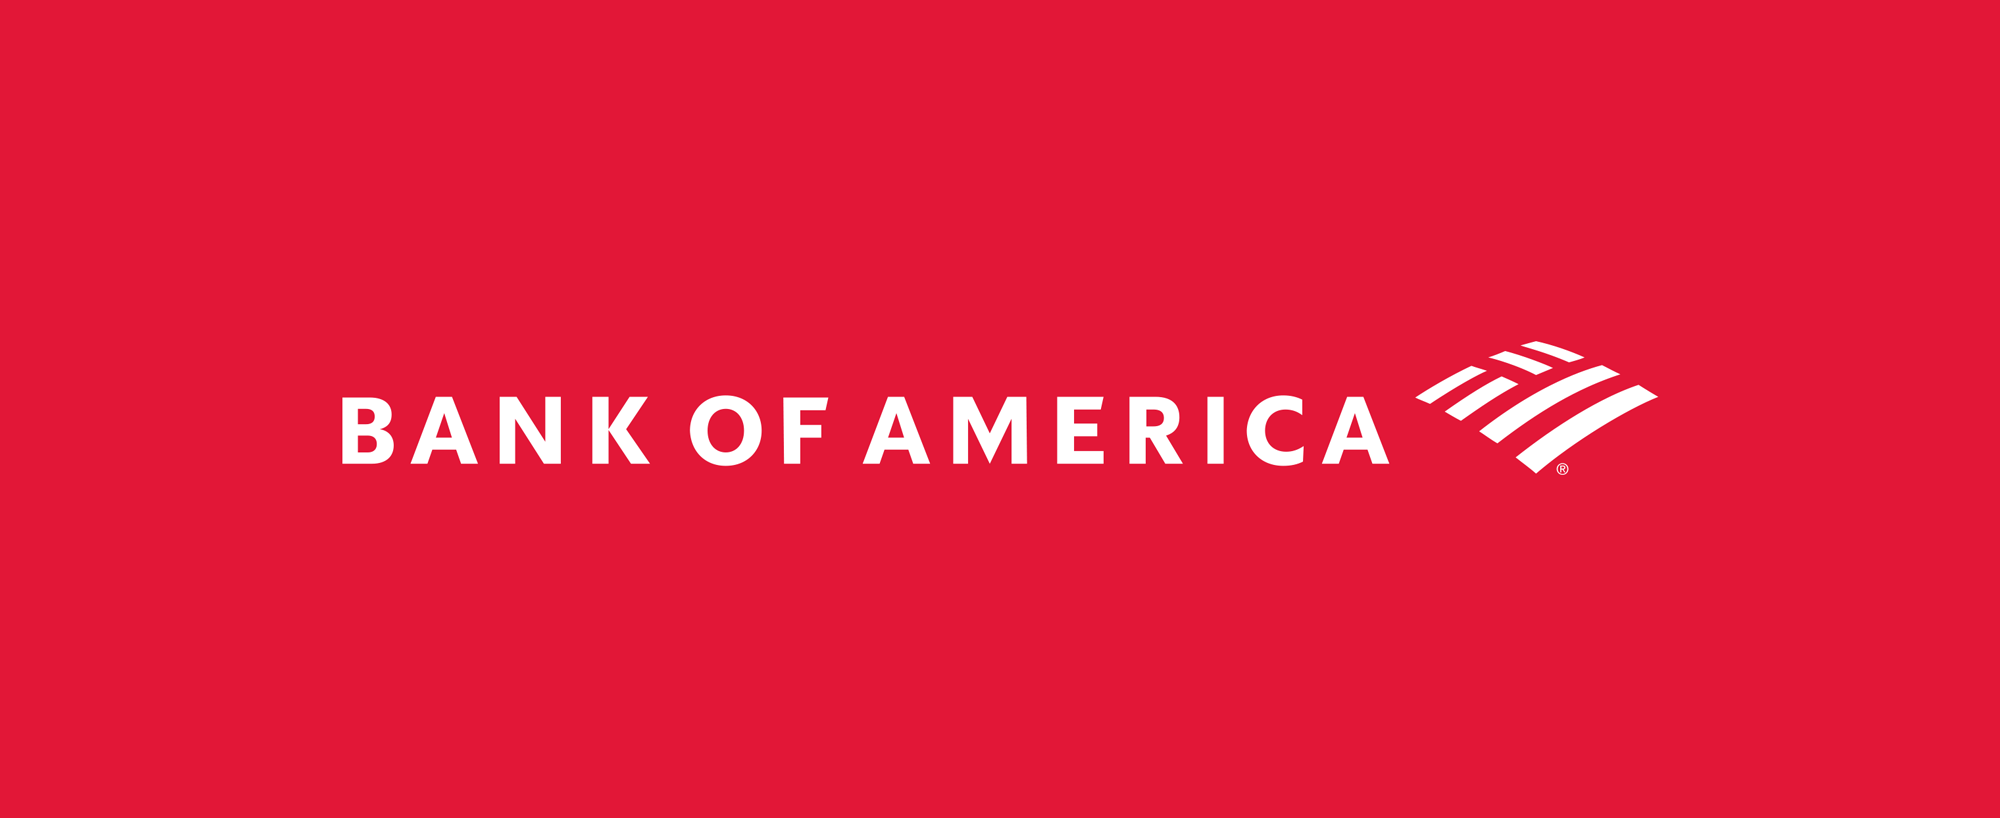 Bank of America Logo - Brand New: New Logo for Bank of America by Lippincott